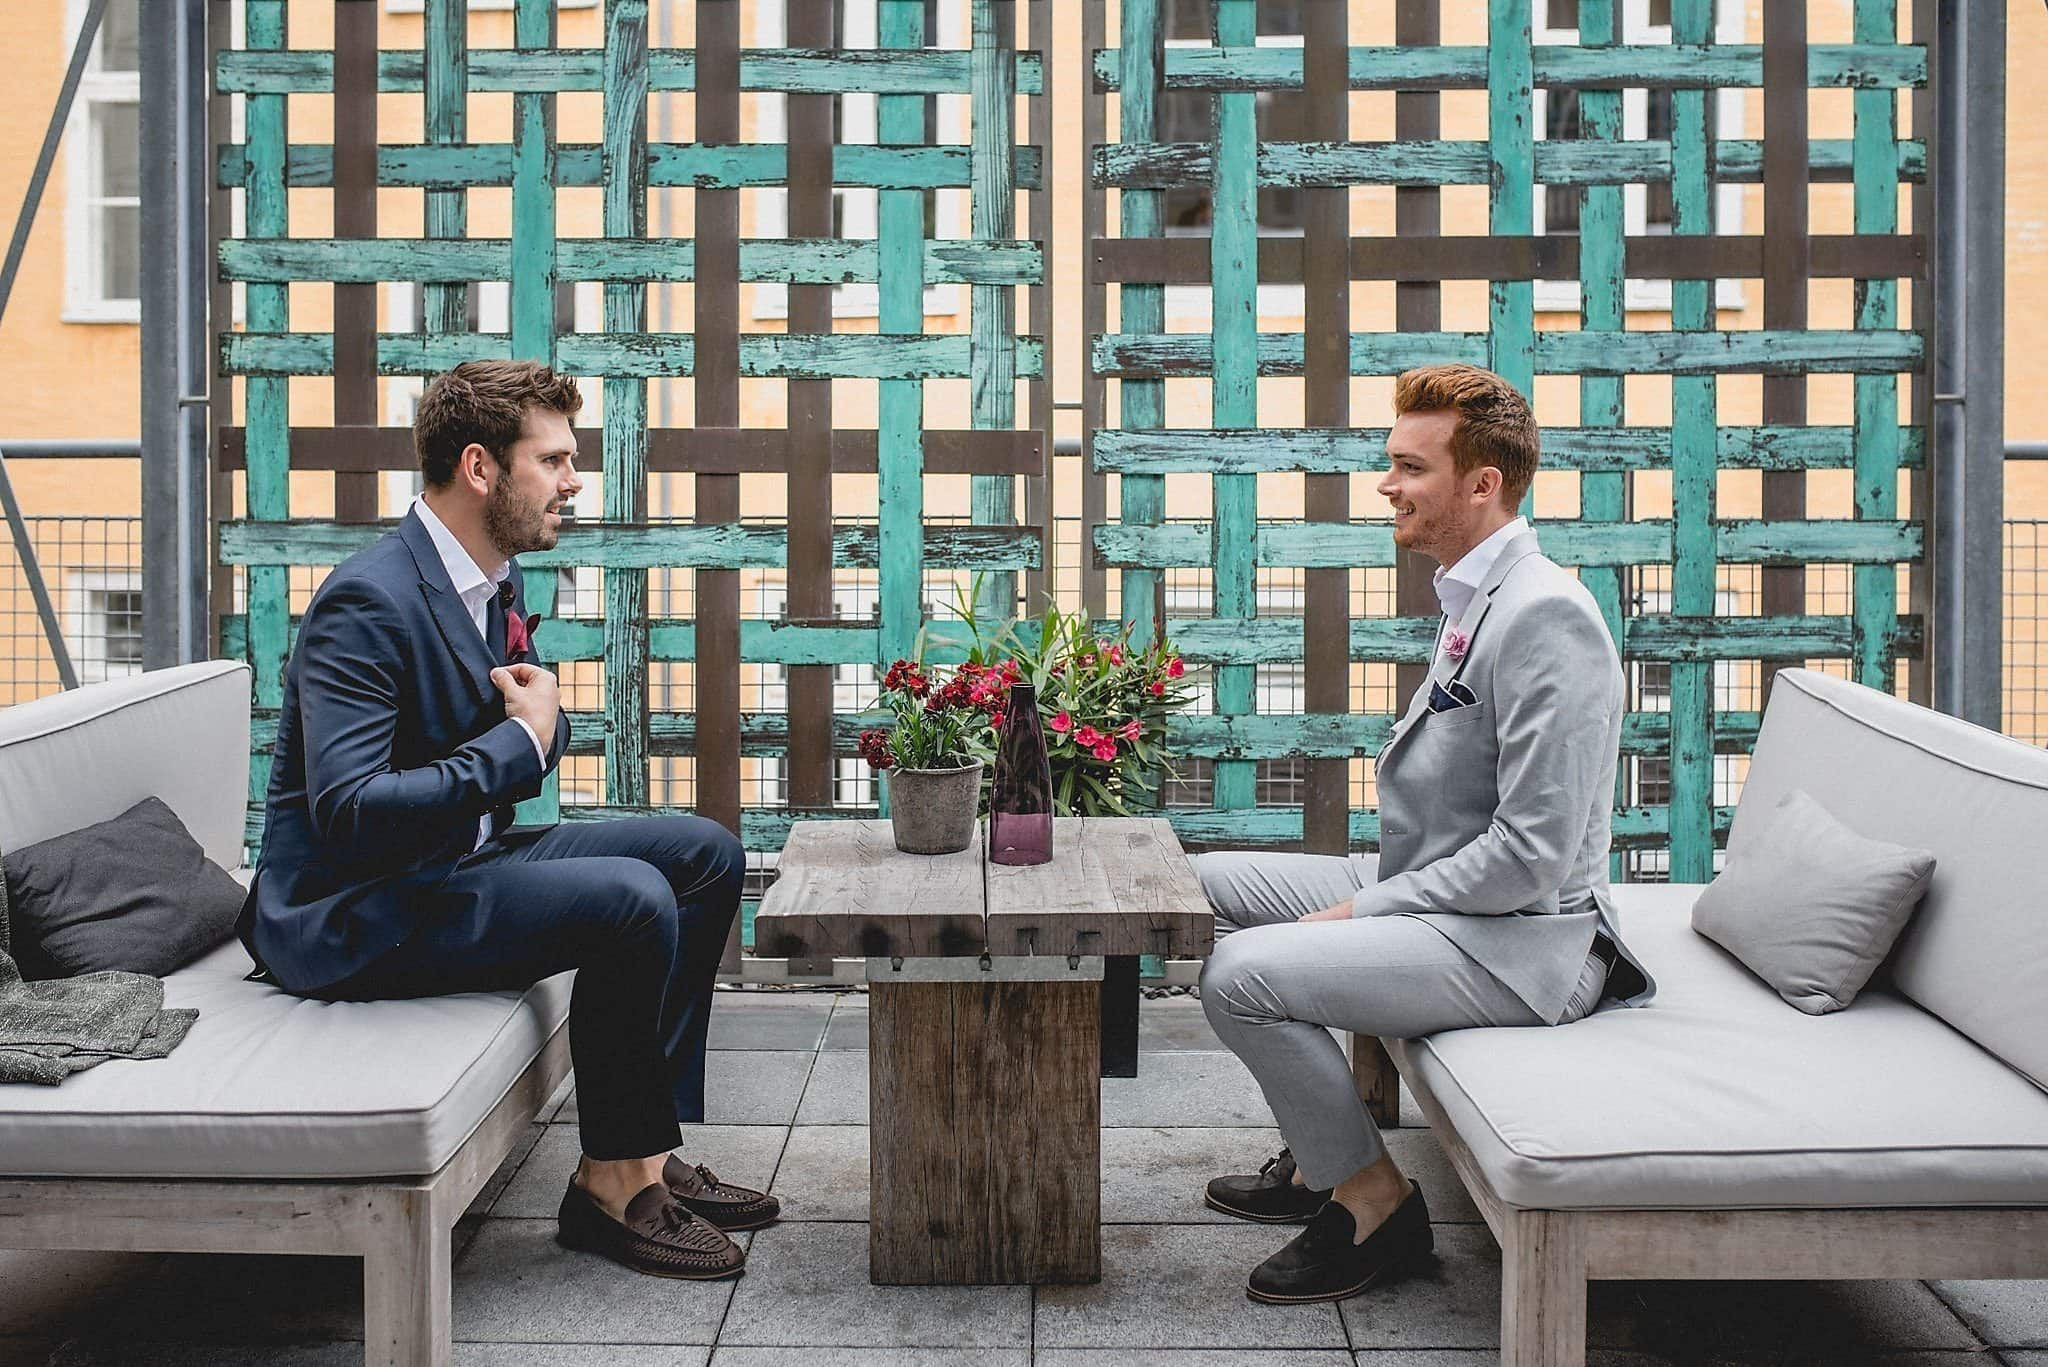 Drew and Tom are seated opposite one another in front of a teal trellis on the roof of their stylish Copenhagen hotel